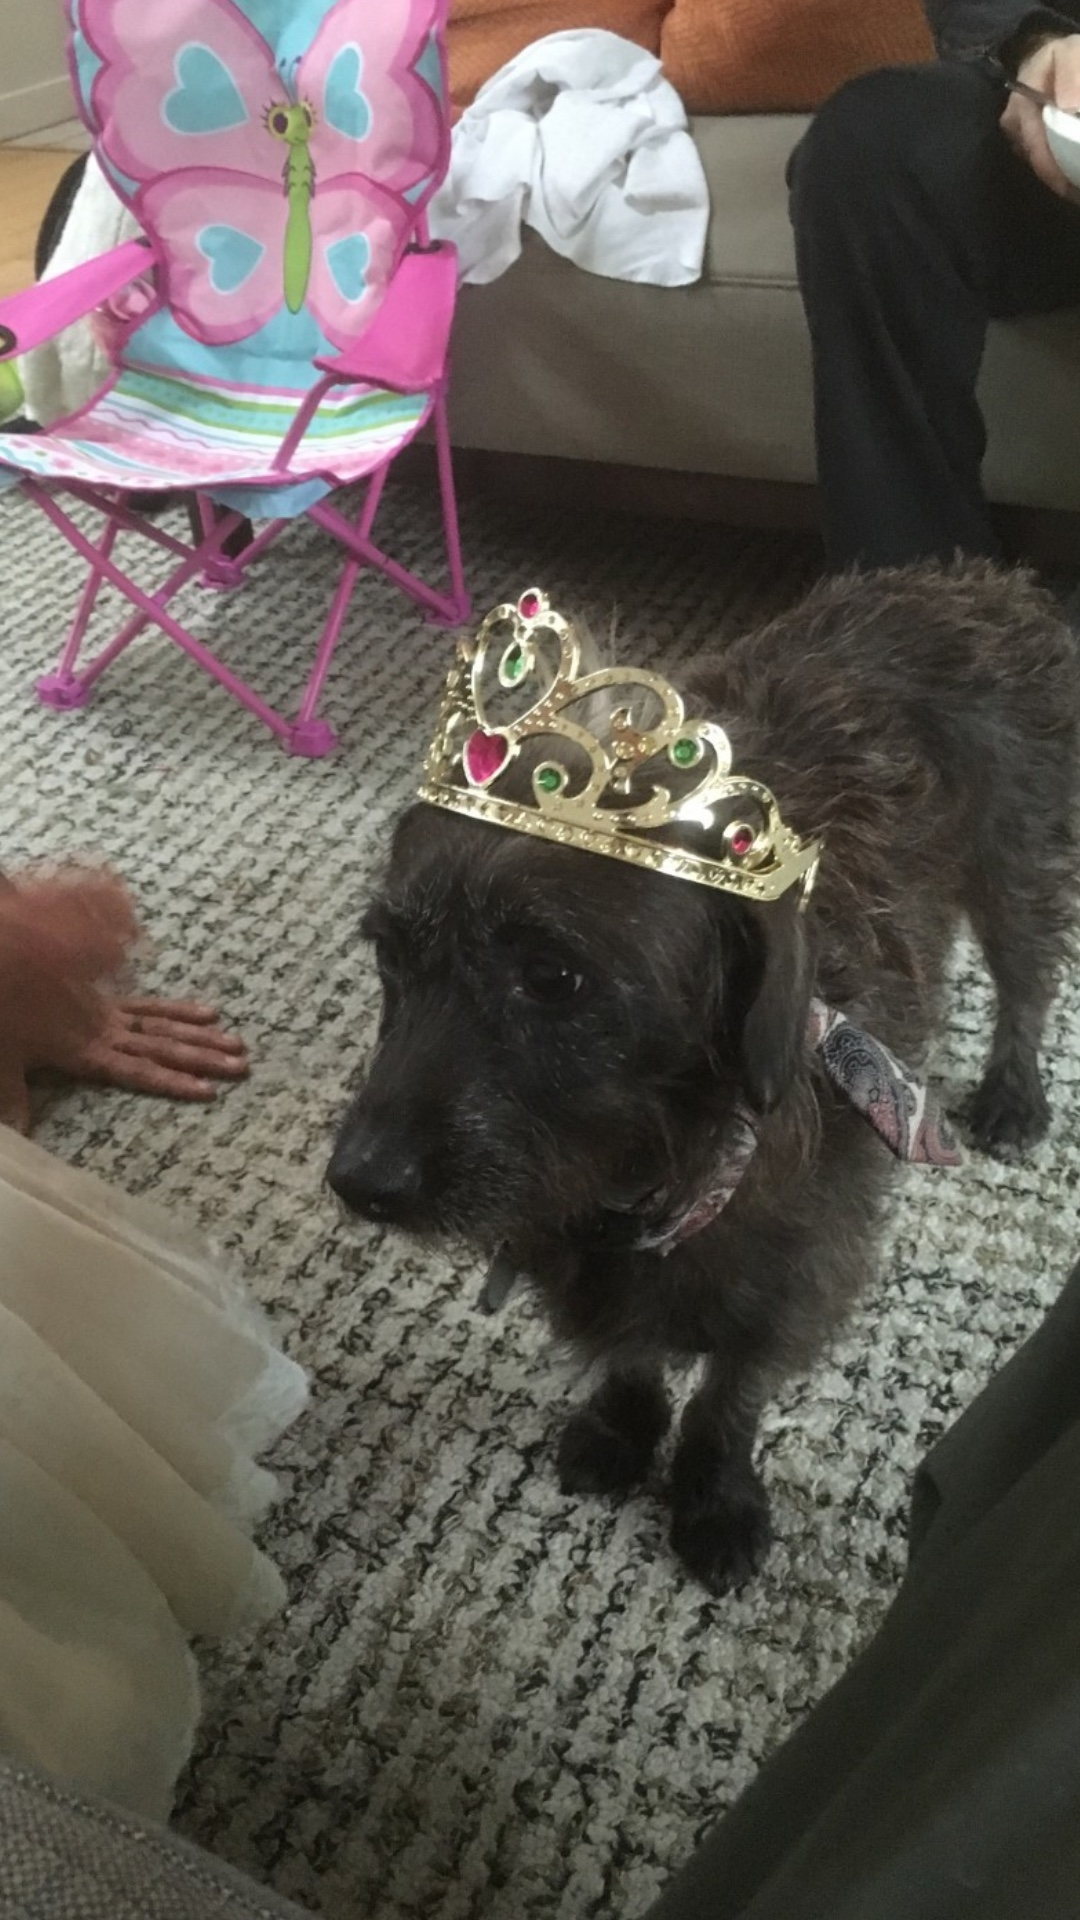 Queen for a day…this is a leftover from our stay in Denver, Co. Tiara, compliments of Mabel Magdovitz.